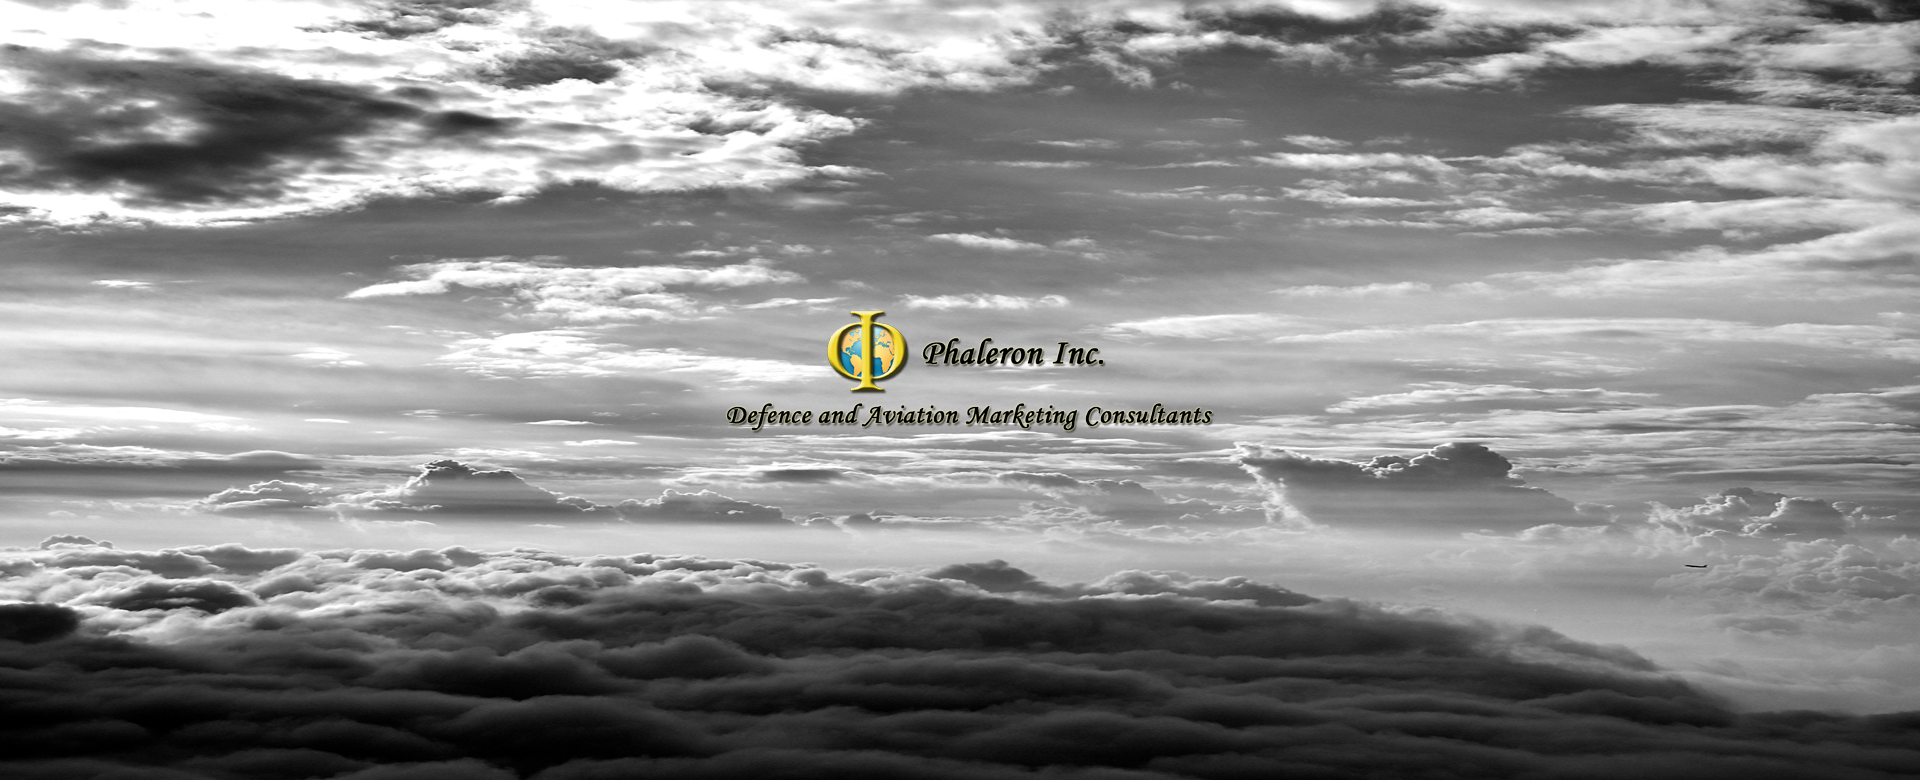 Phaleron Inc. Unveils Revamped Website